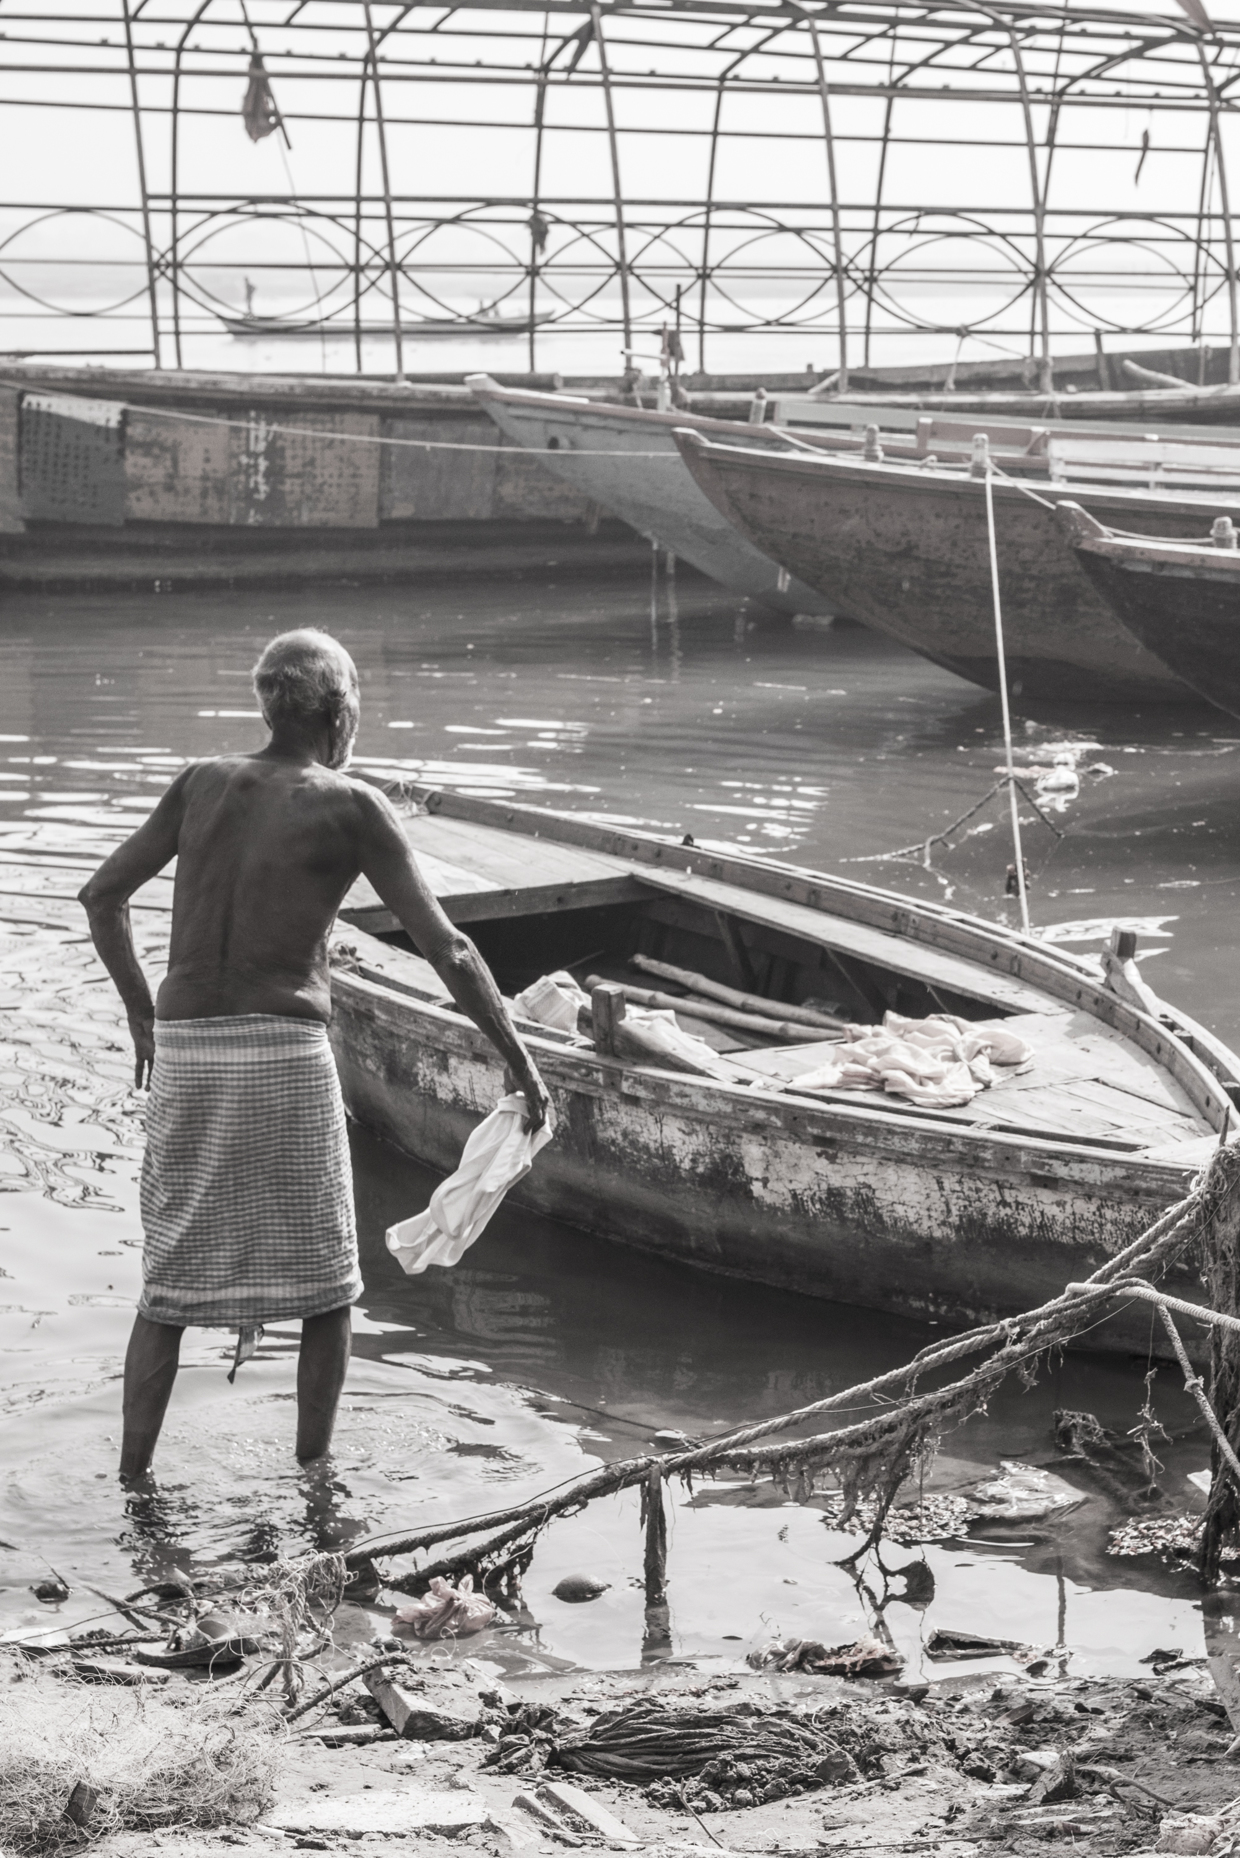 The holy river of Ganges is used for pretty much everything. This man is cleaning his clothes after a bath.